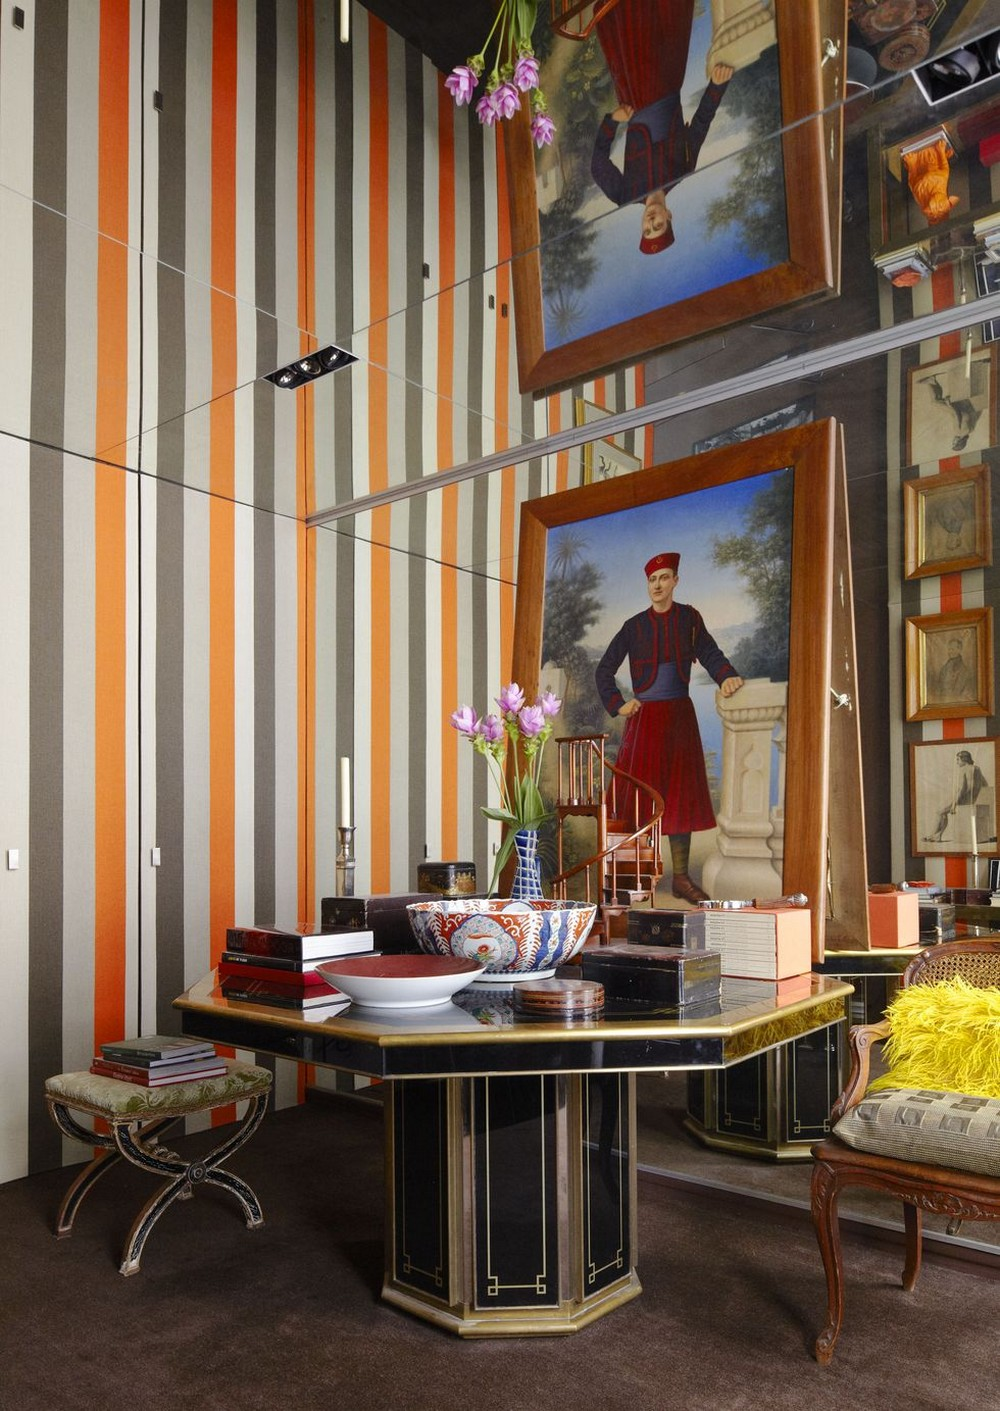 Bohemian Design Add a More Eclectic Touch to Your Home Interiors 5 bohemian design Bohemian Design: Add a More Eclectic Touch to Your Home Interiors Bohemian Design Add a More Eclectic Touch to Your Home Interiors 5